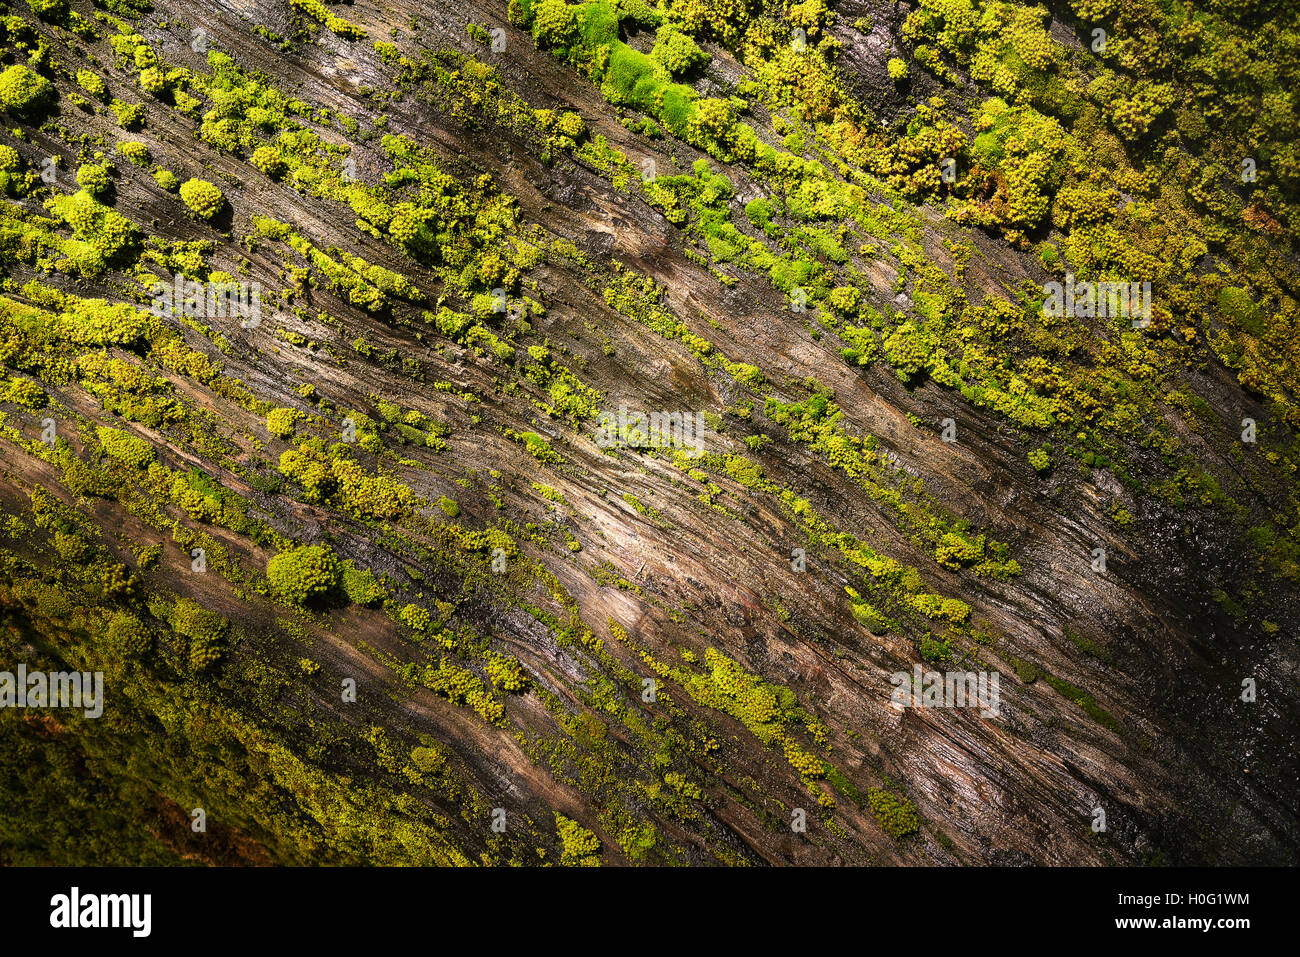 Moss covered sequoia tree in Sequoia National Park - Stock Image